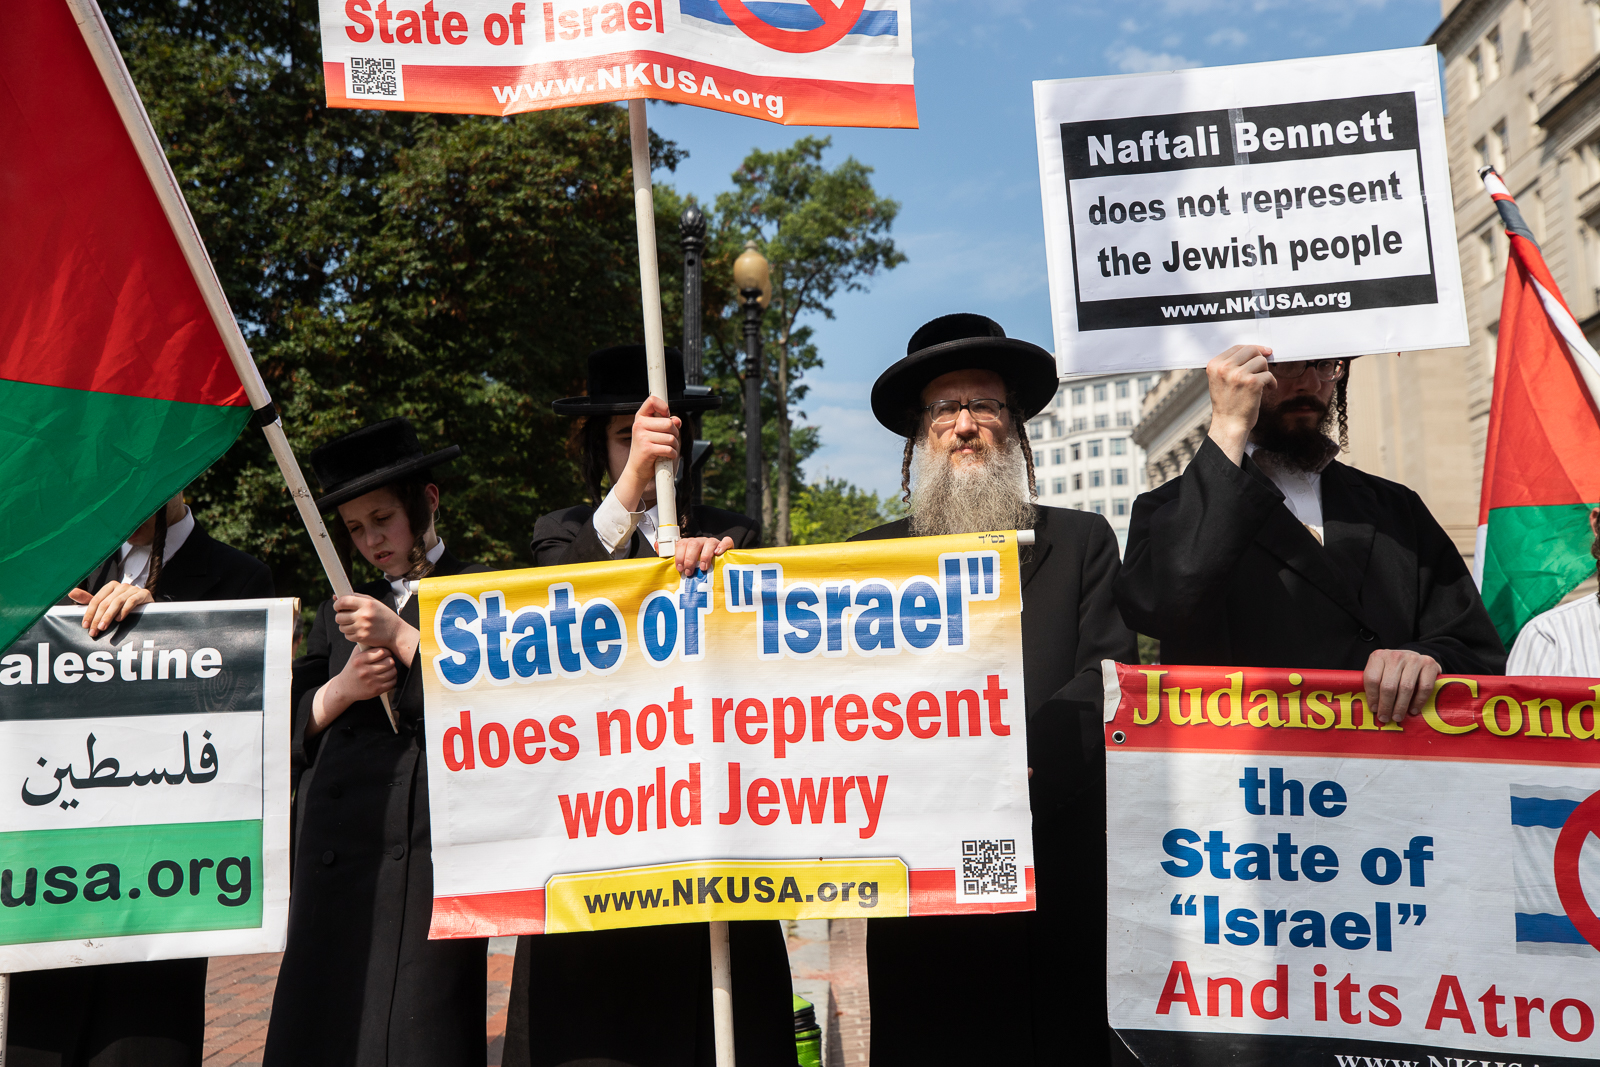 A group of rabbis joined demonstrators in protest of President Joe Biden's meeting with Israeli Prime Minister Naftali Bennett in Washington, D.C. on August 26, 2021. (Kaylee Greenlee - Daily Caller News Foundation)